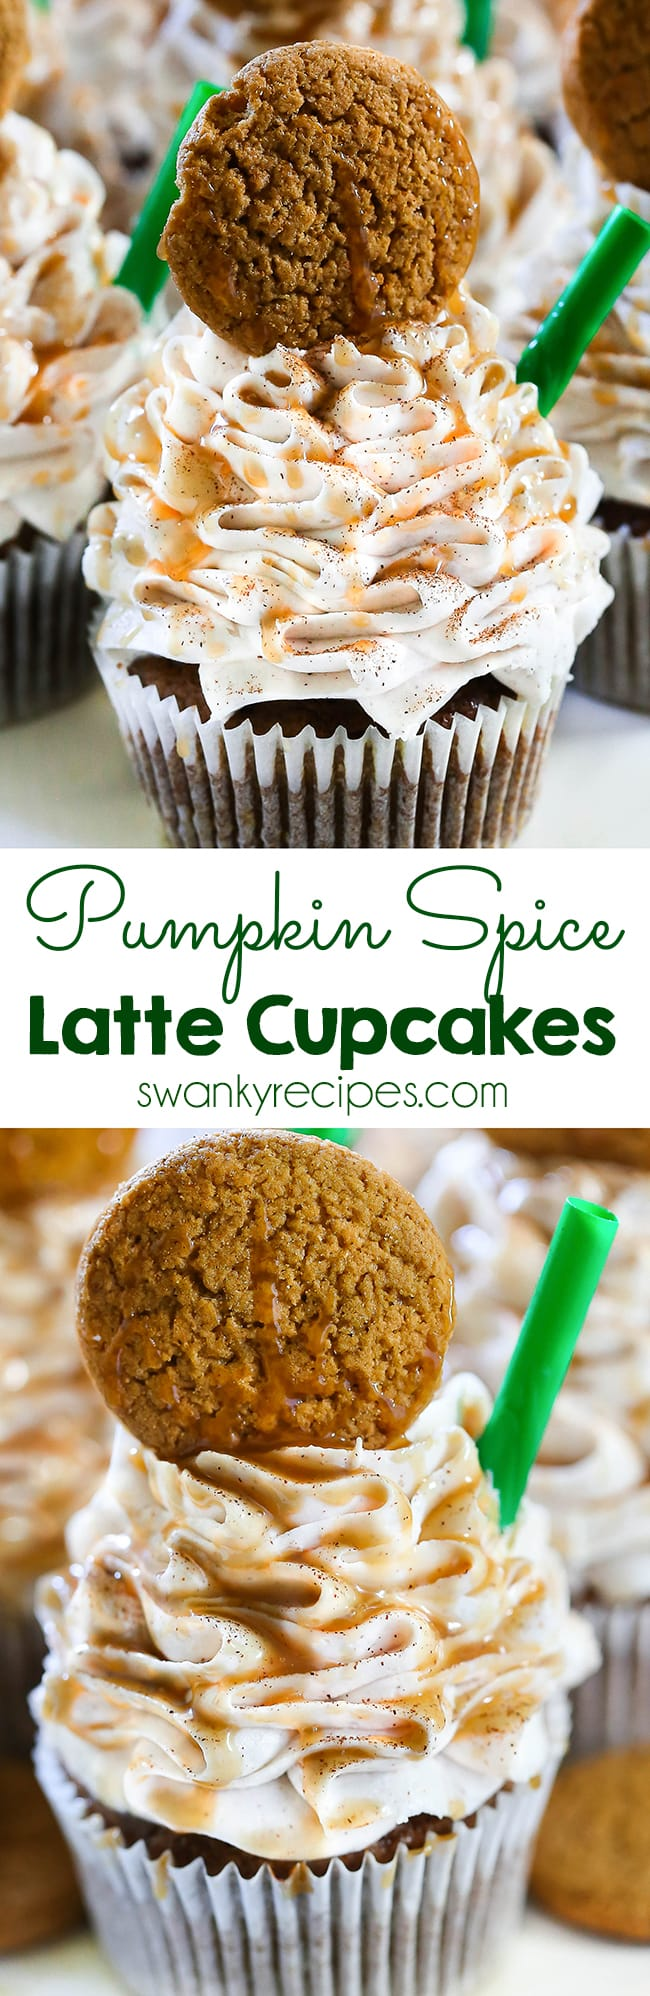 Pumpkin Spice Latte Cupcakes - A Starbucks dessert recipe. Everyone loves these Starbucks Pumpkin Spice Latte Cupcakes. Made with caramel sauce and pumpkin, these cupcakes are the perfect fall dessert.